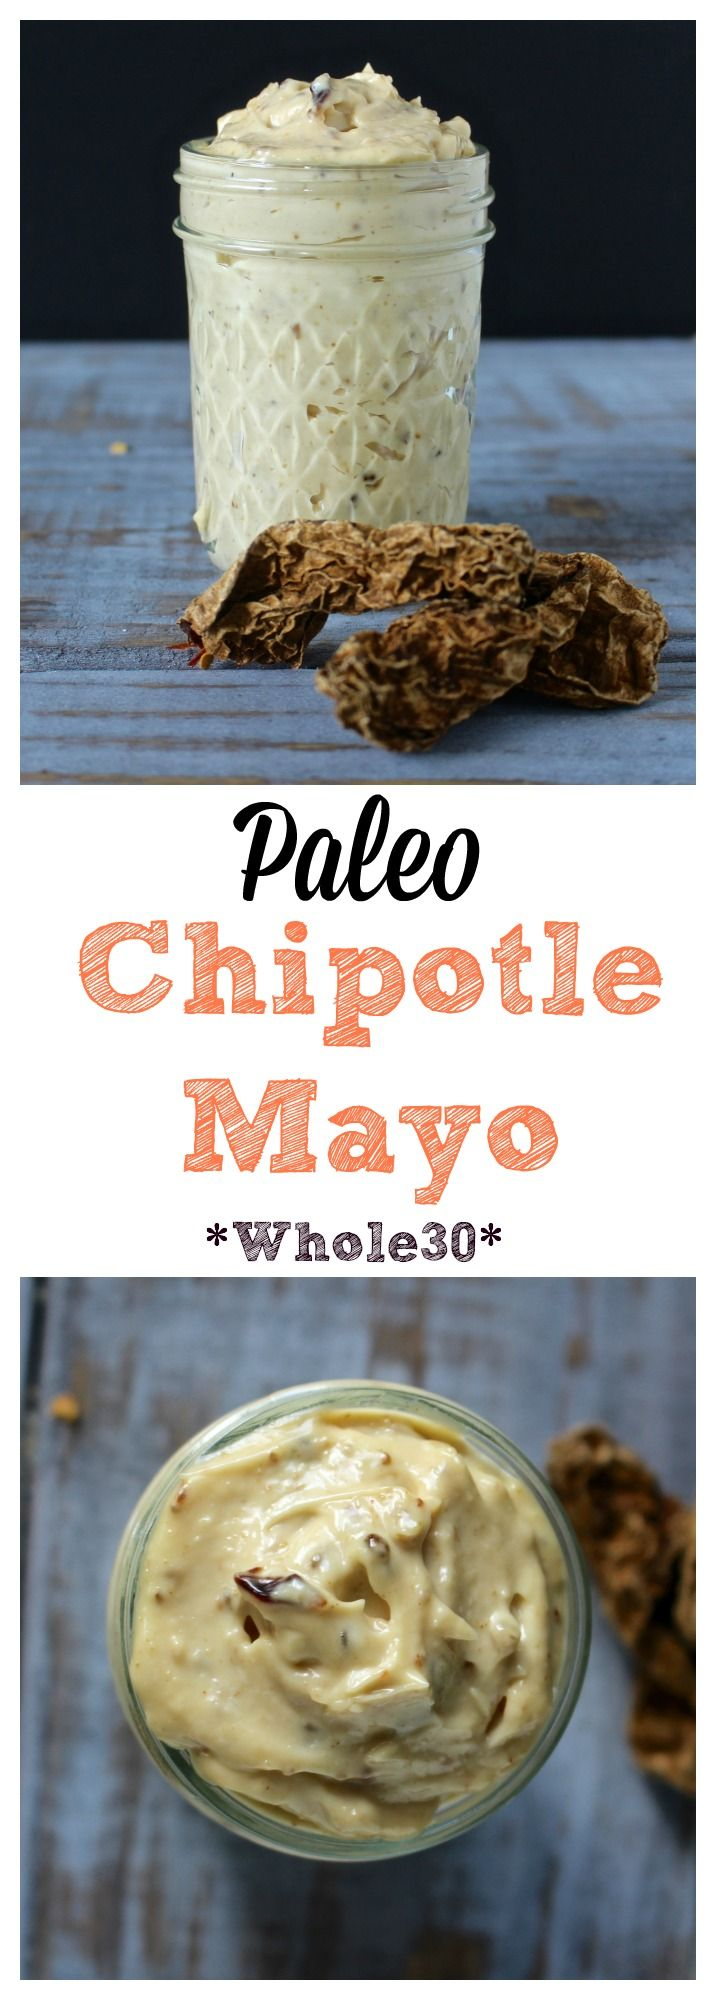 Paleo Chipotle Mayo- less than 5 minutes to make and so delicious! Whole30, gluten free, and lo carb.